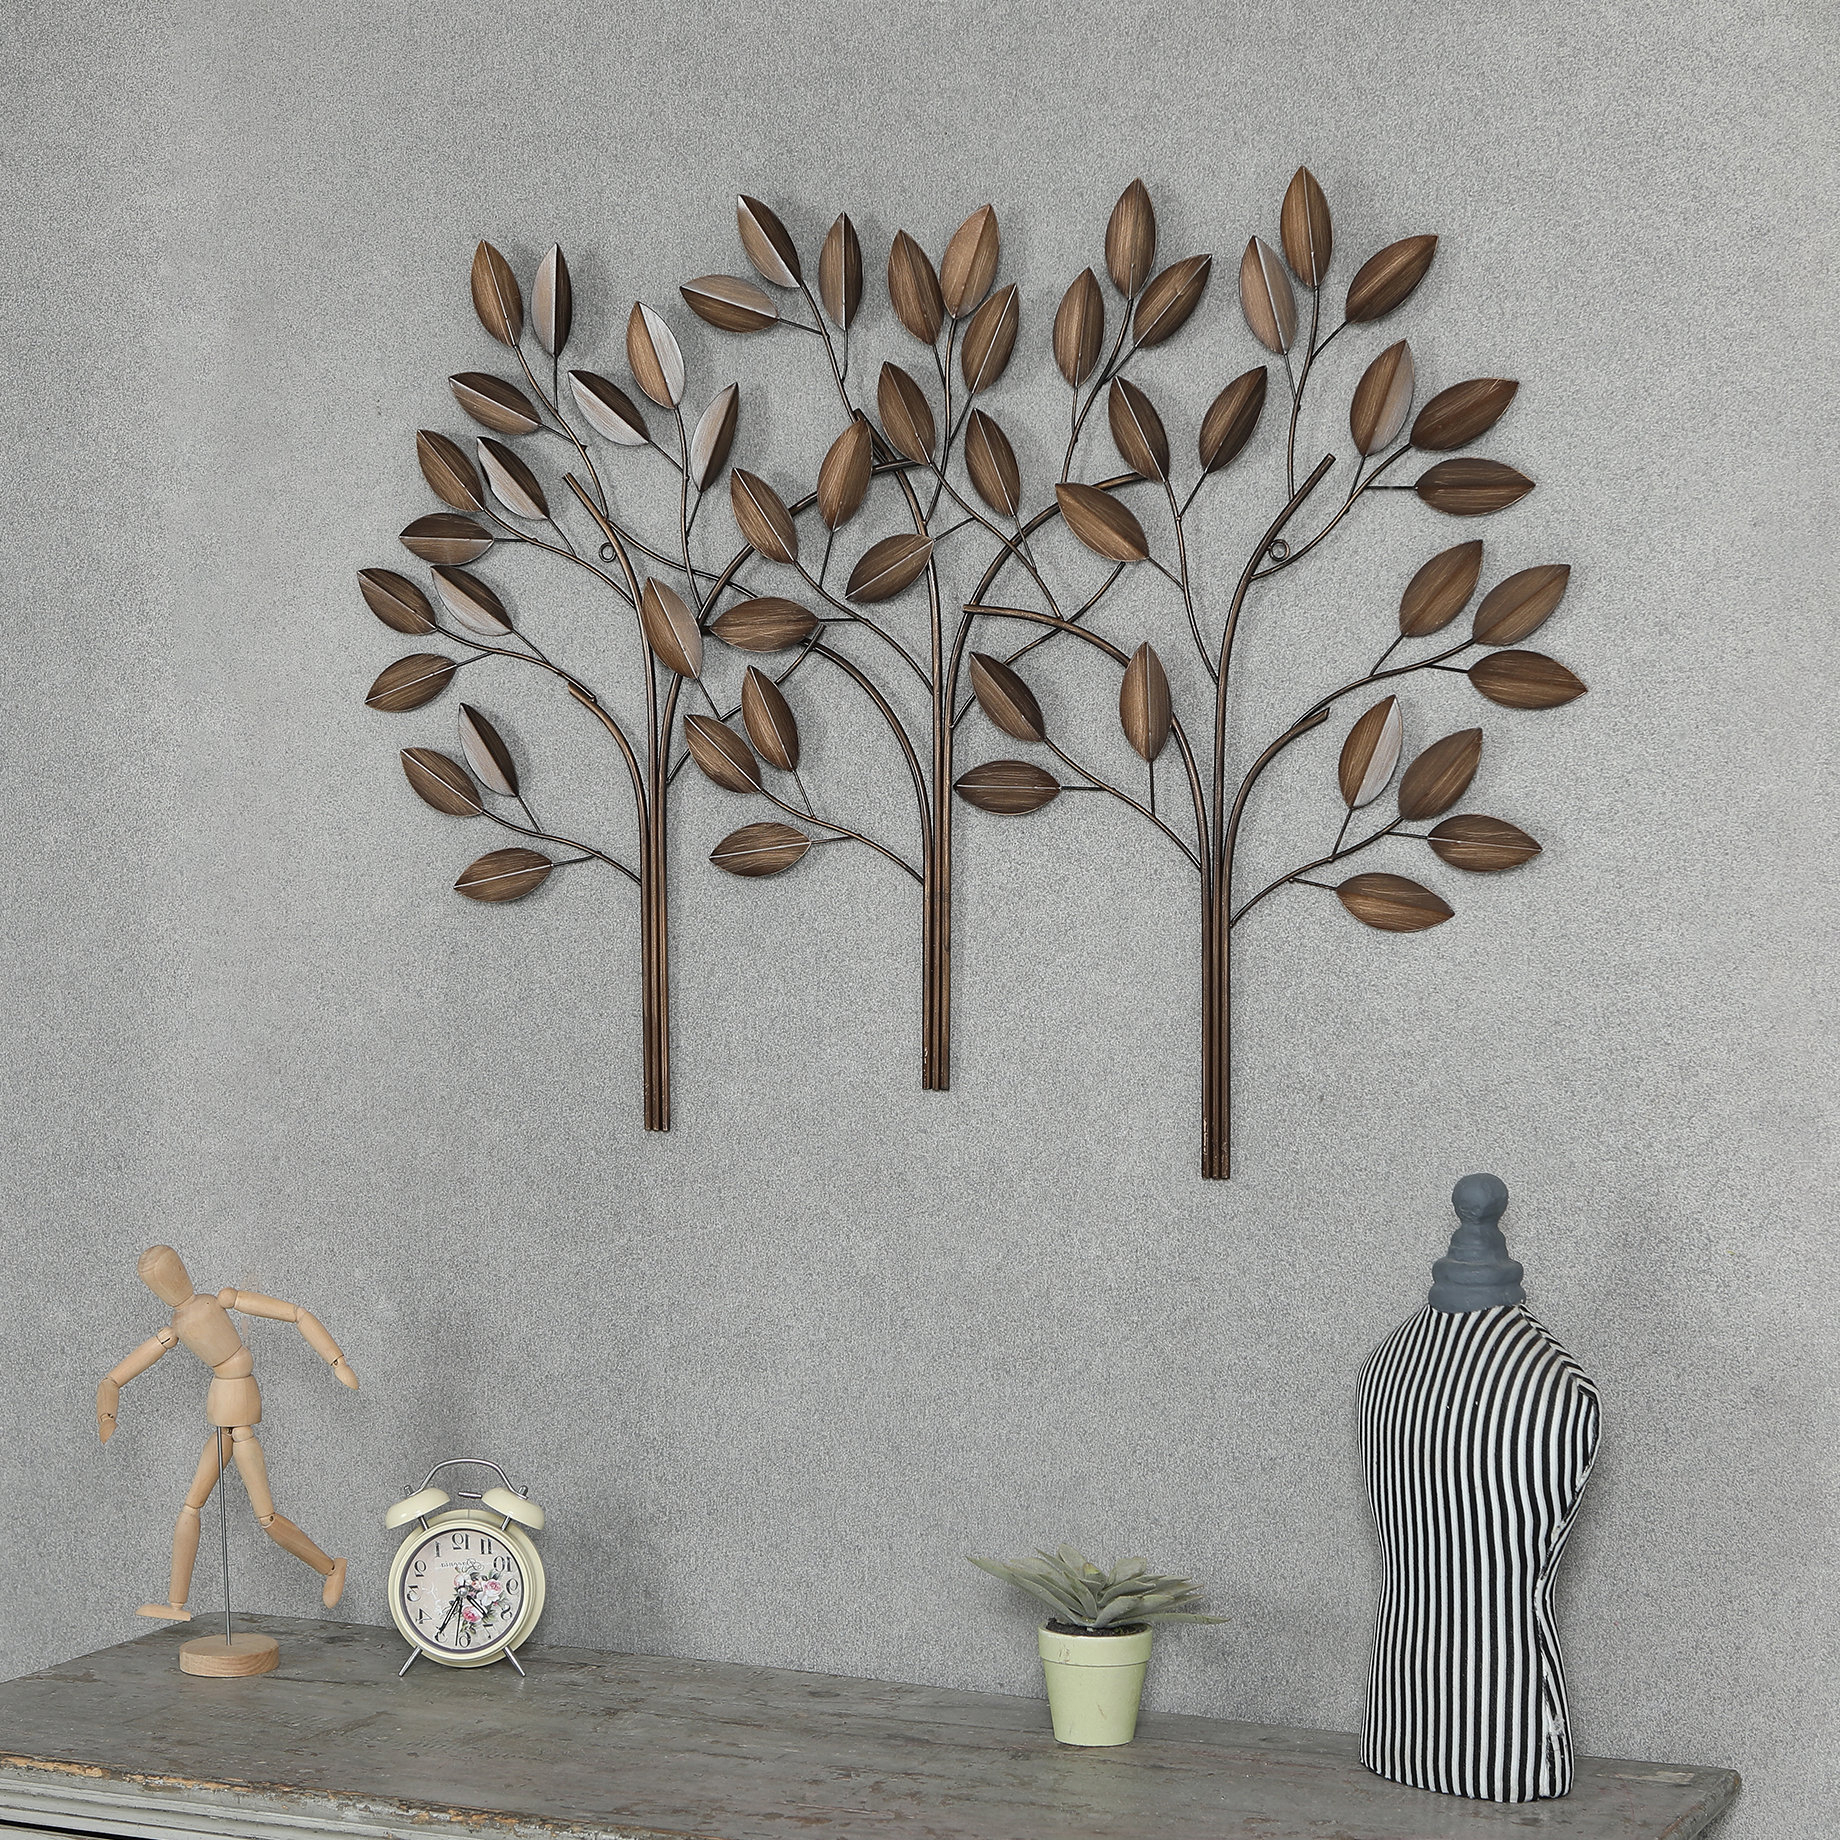 Leaves Metal Sculpture Wall Decor By Winston Porter Within Well Liked Winston Porter Metal Trees Wall Décor & Reviews (View 4 of 20)